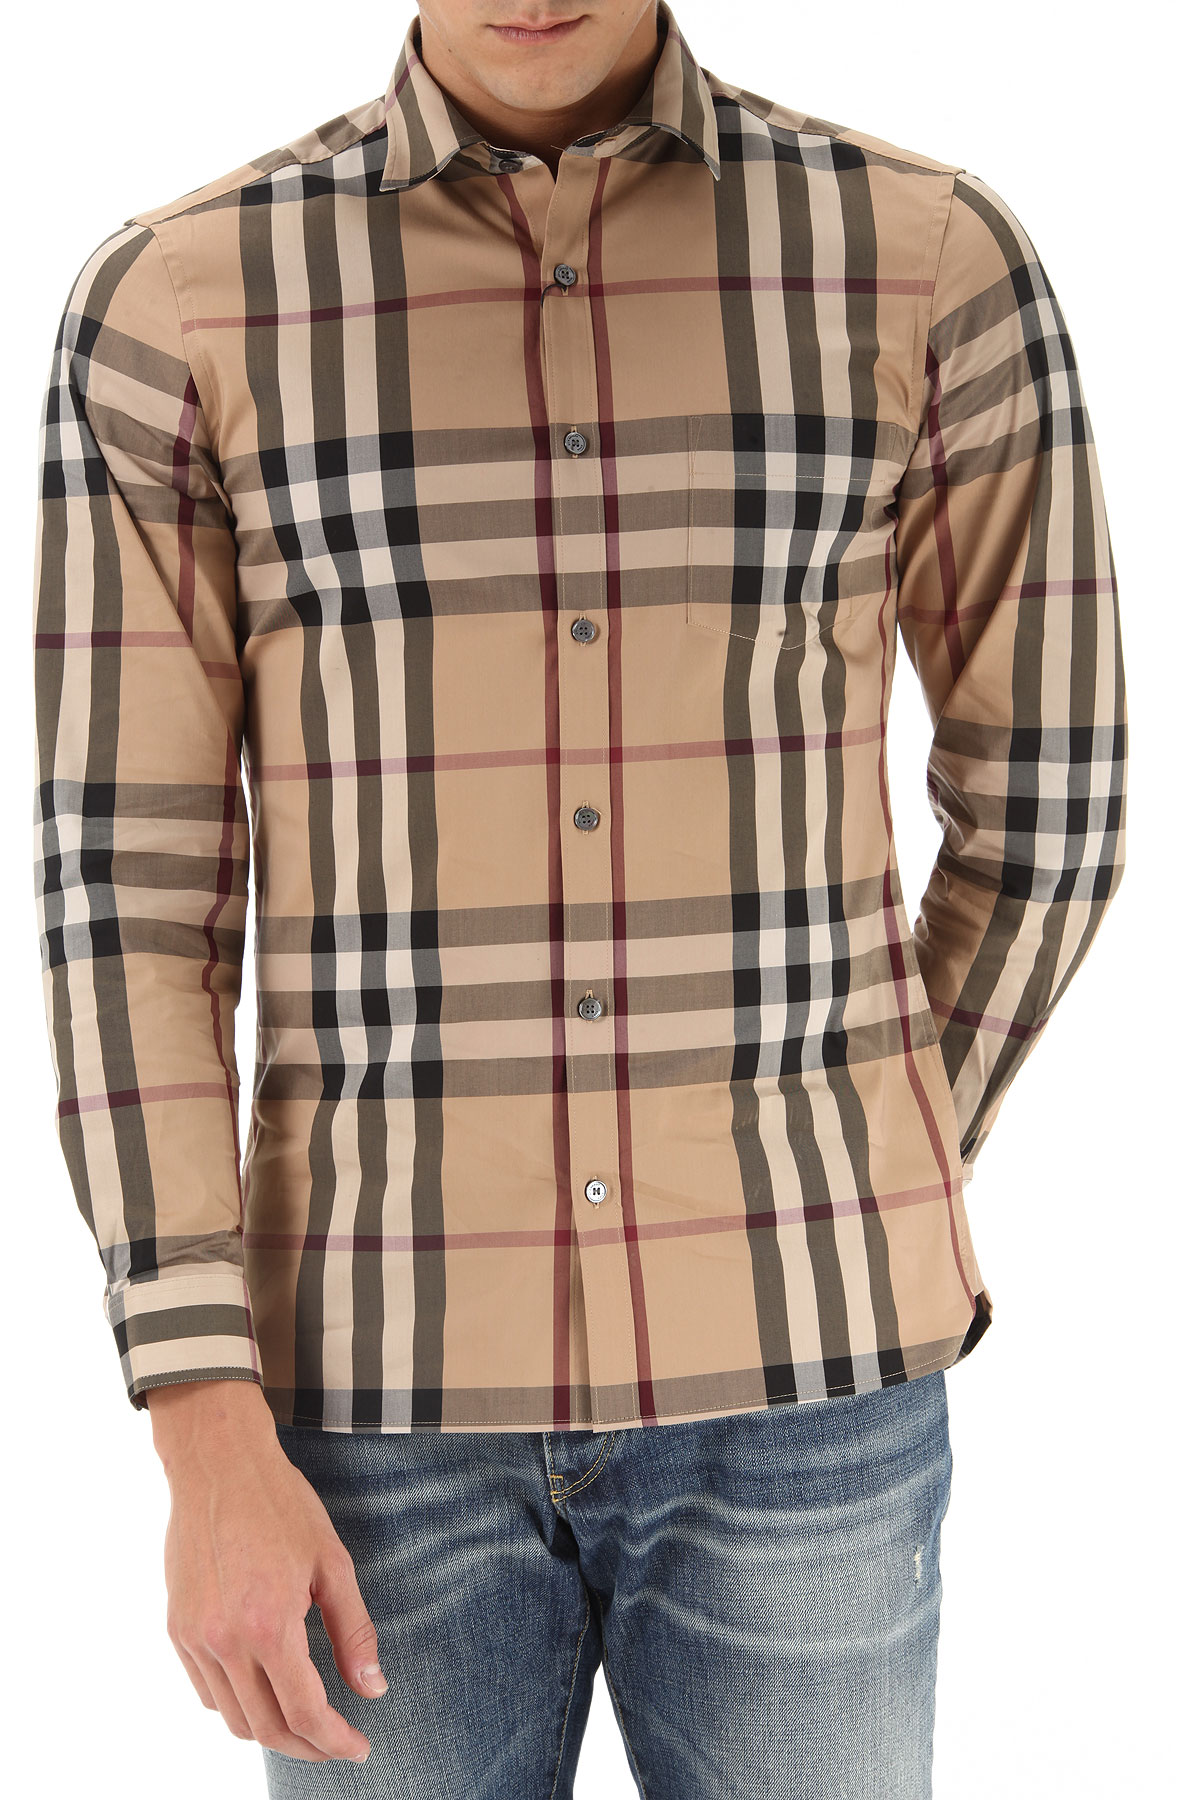 mens clothing burberry style code 4557598nelson2310b